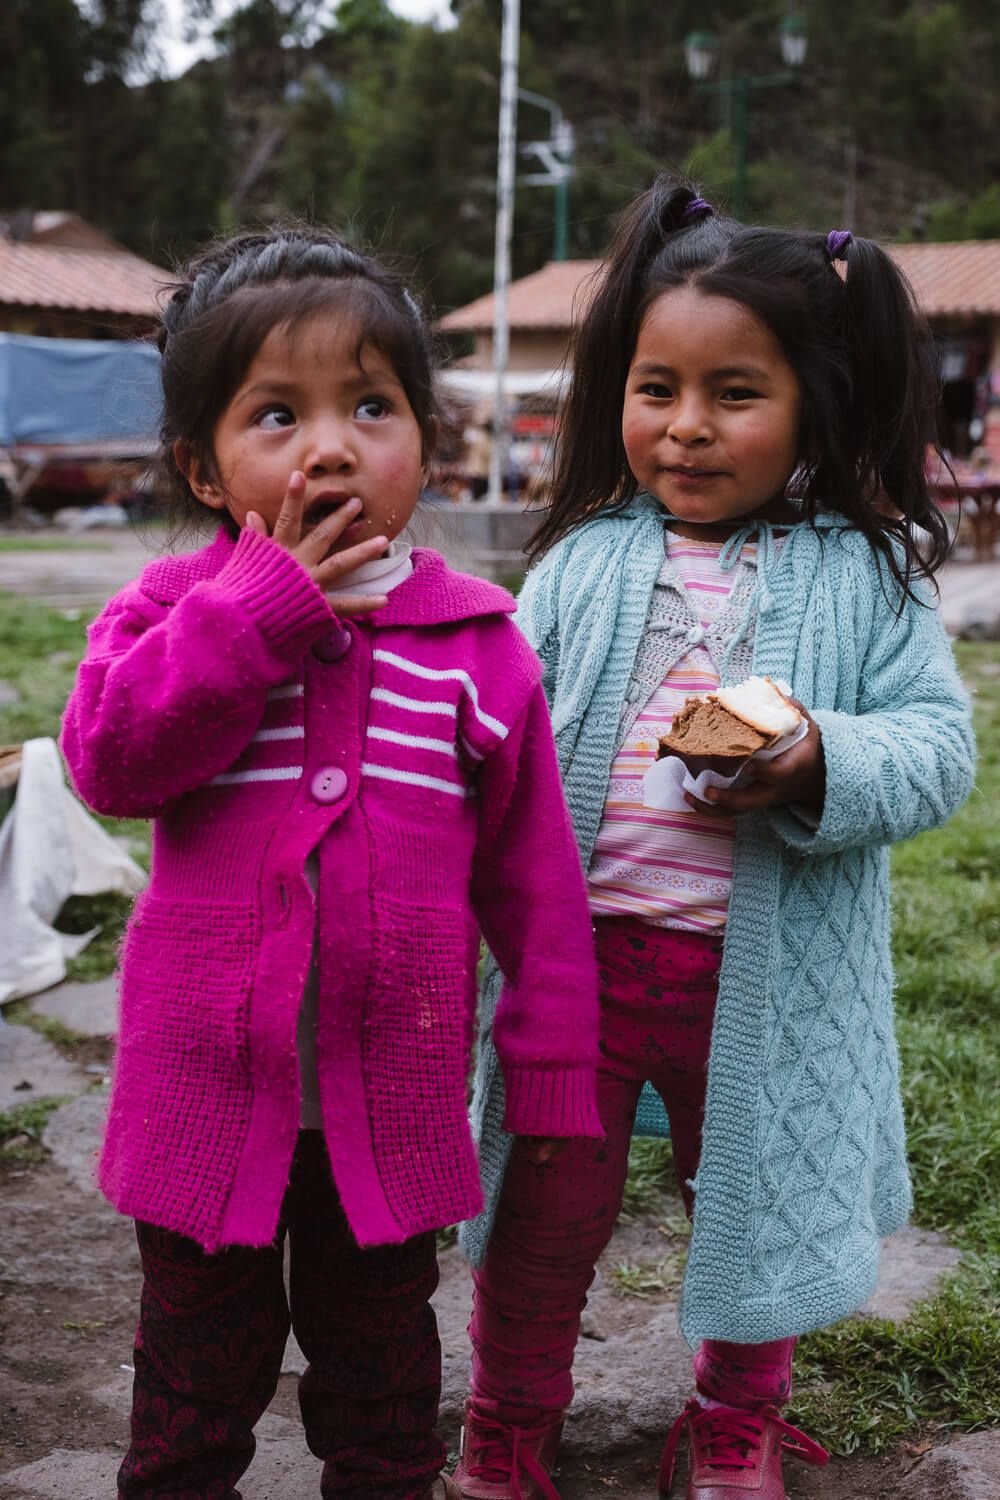 "Girls enjoying a snack in Waqch'i. Travel photography and guide by © Natasha Lequepeys for ""And Then I Met Yoko"". #peru #sacredvalley #cusco #laketiticaca #belmondandeanexplorer #perurail #perutrain #luxurytravel #sleepertrain #photoblog #travelblog #travelphotography #fujifilm #andes #travel #travelperu #cuscotolaketiticaca #spiritofthelake #belmond #puno #southamerica"